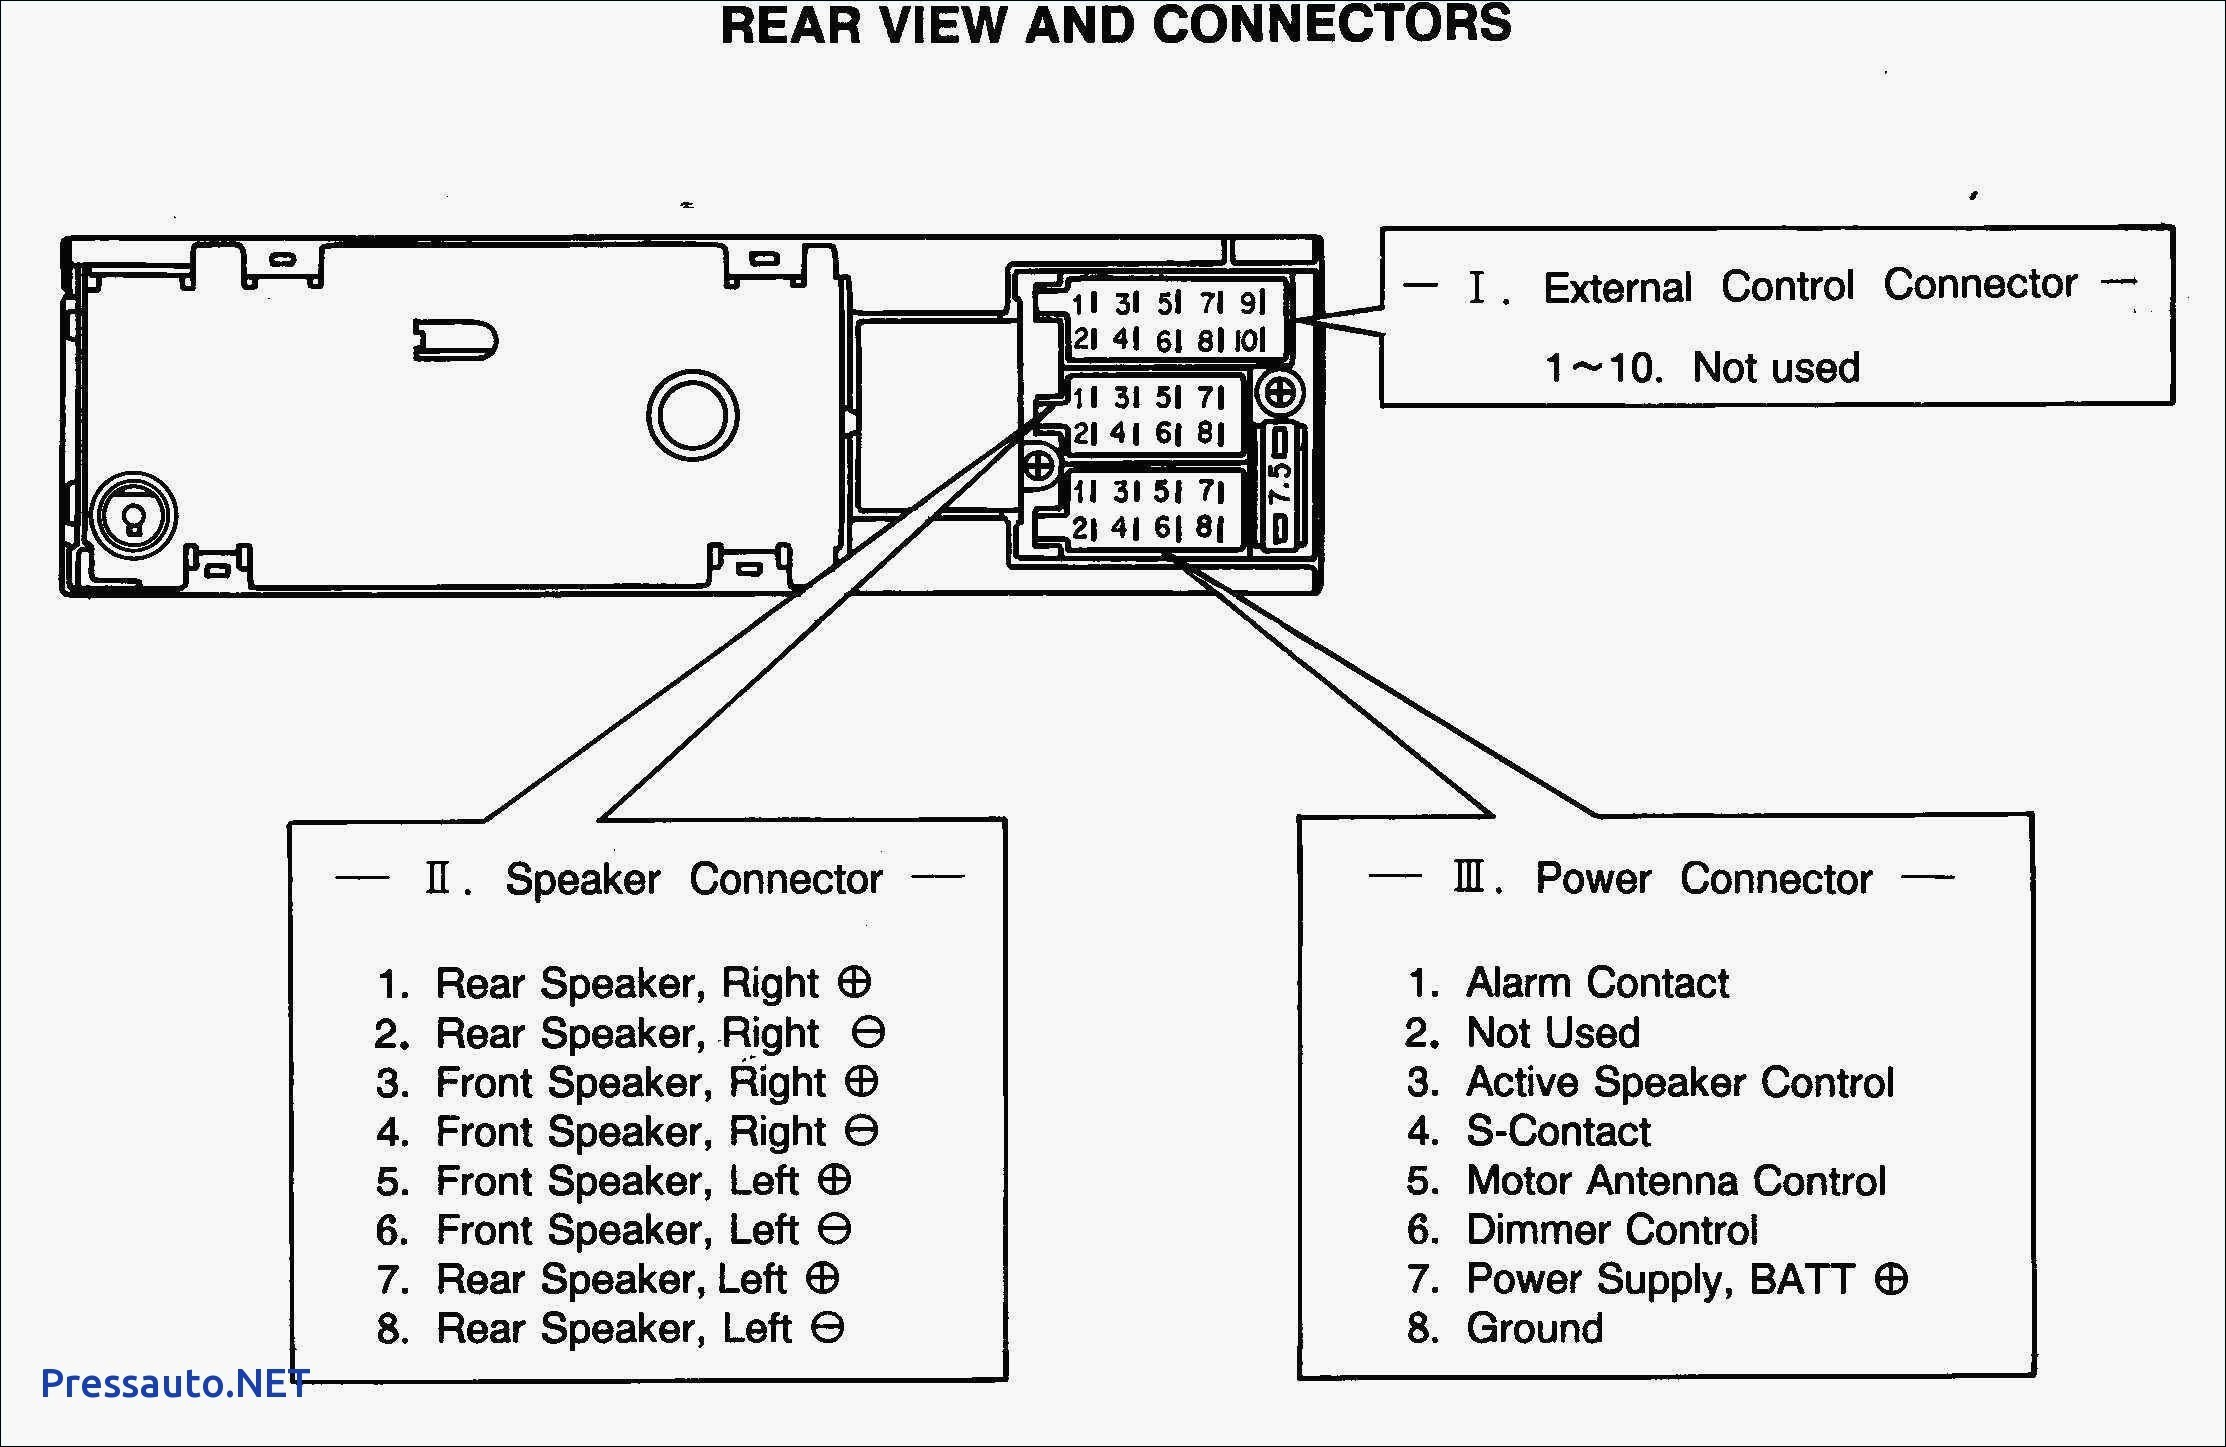 2001 Suzuki Xl7 Factory Stereo Wiring Diagram from static-resources.imageservice.cloud